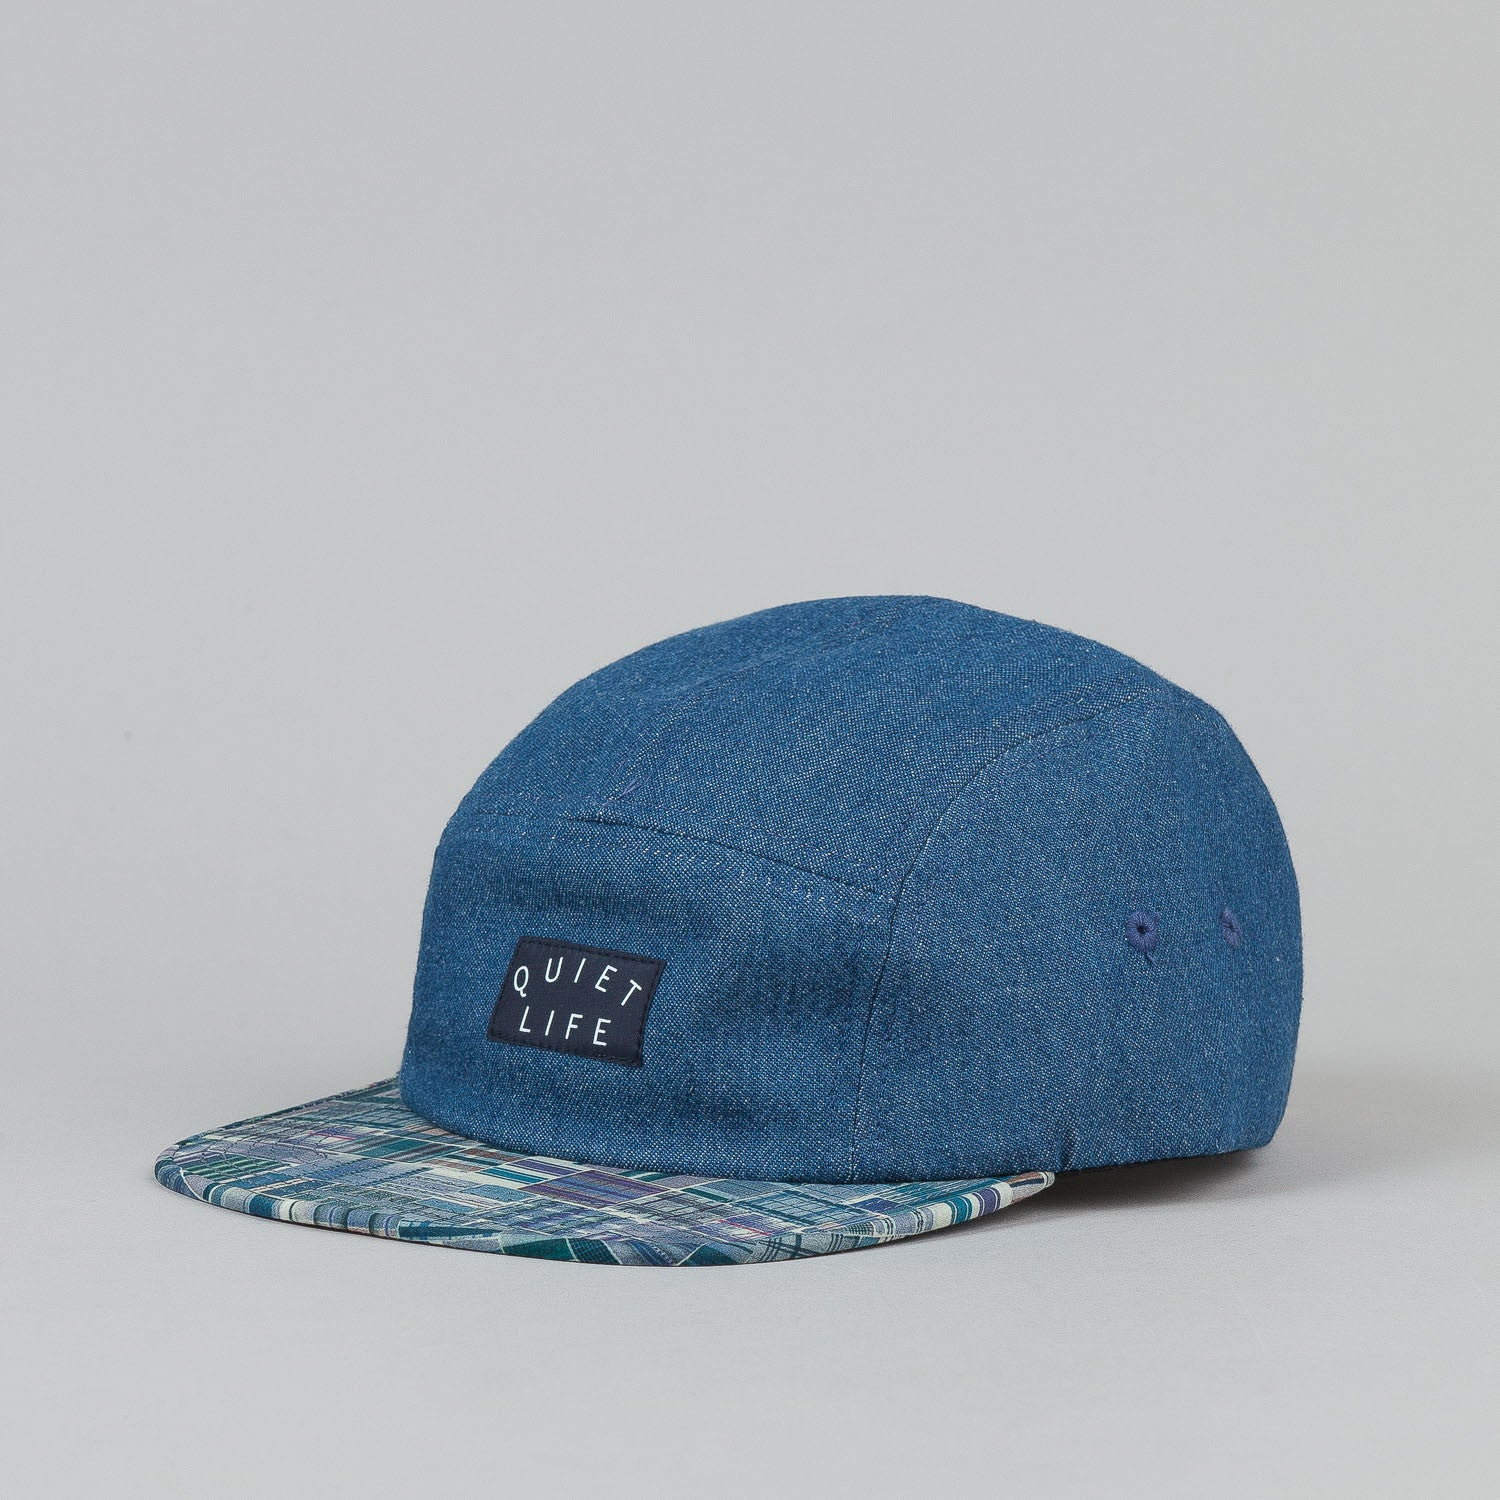 The Quiet Life Liberty Madras 5 Panel Cap